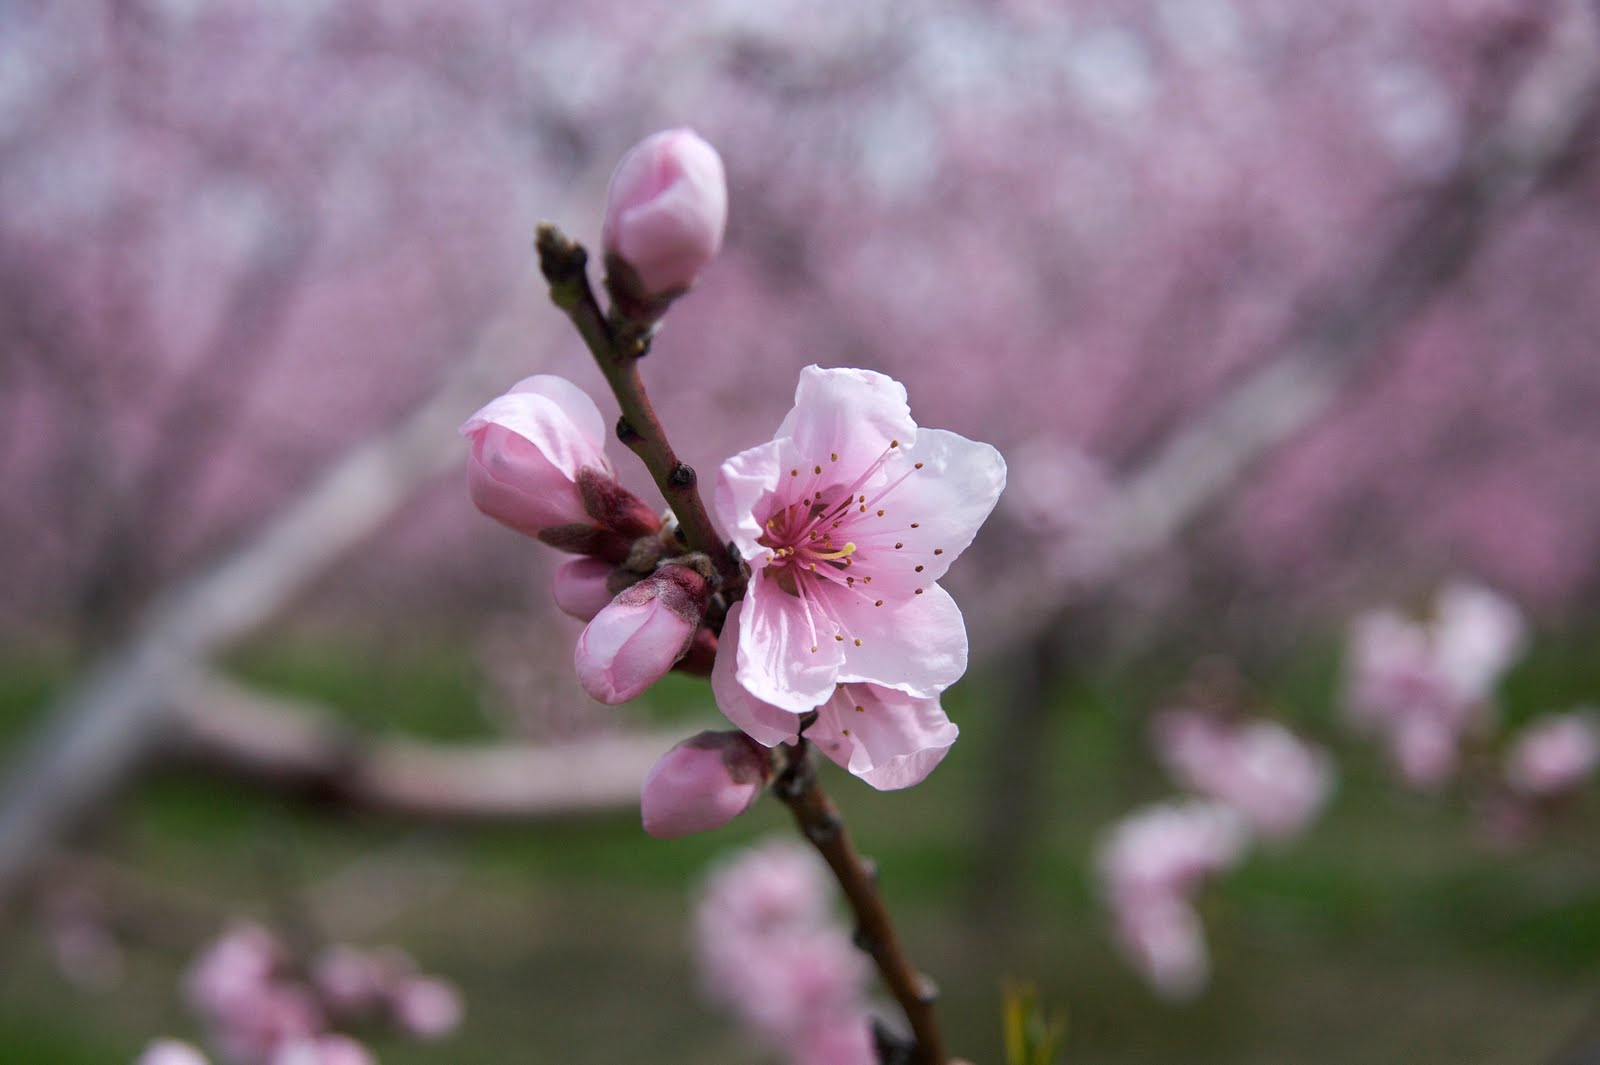 How to draw peach blossoms